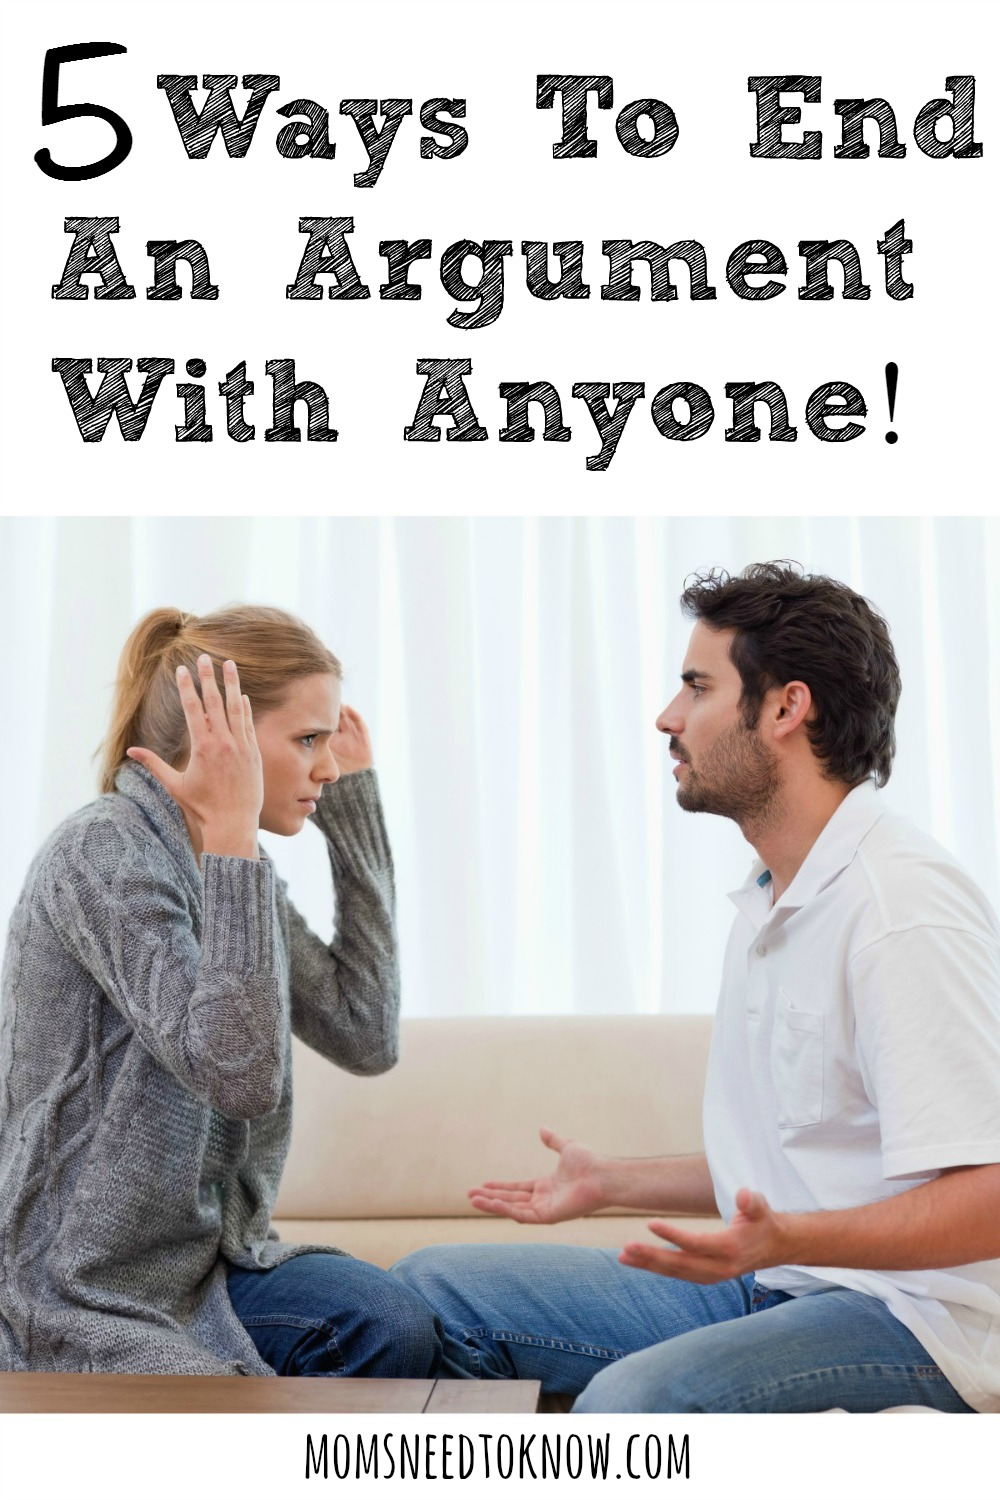 These days, it seems like everyone is arguing over something. While I enjoy lively debate, there comes a time when you need to end an argument. Here's how!